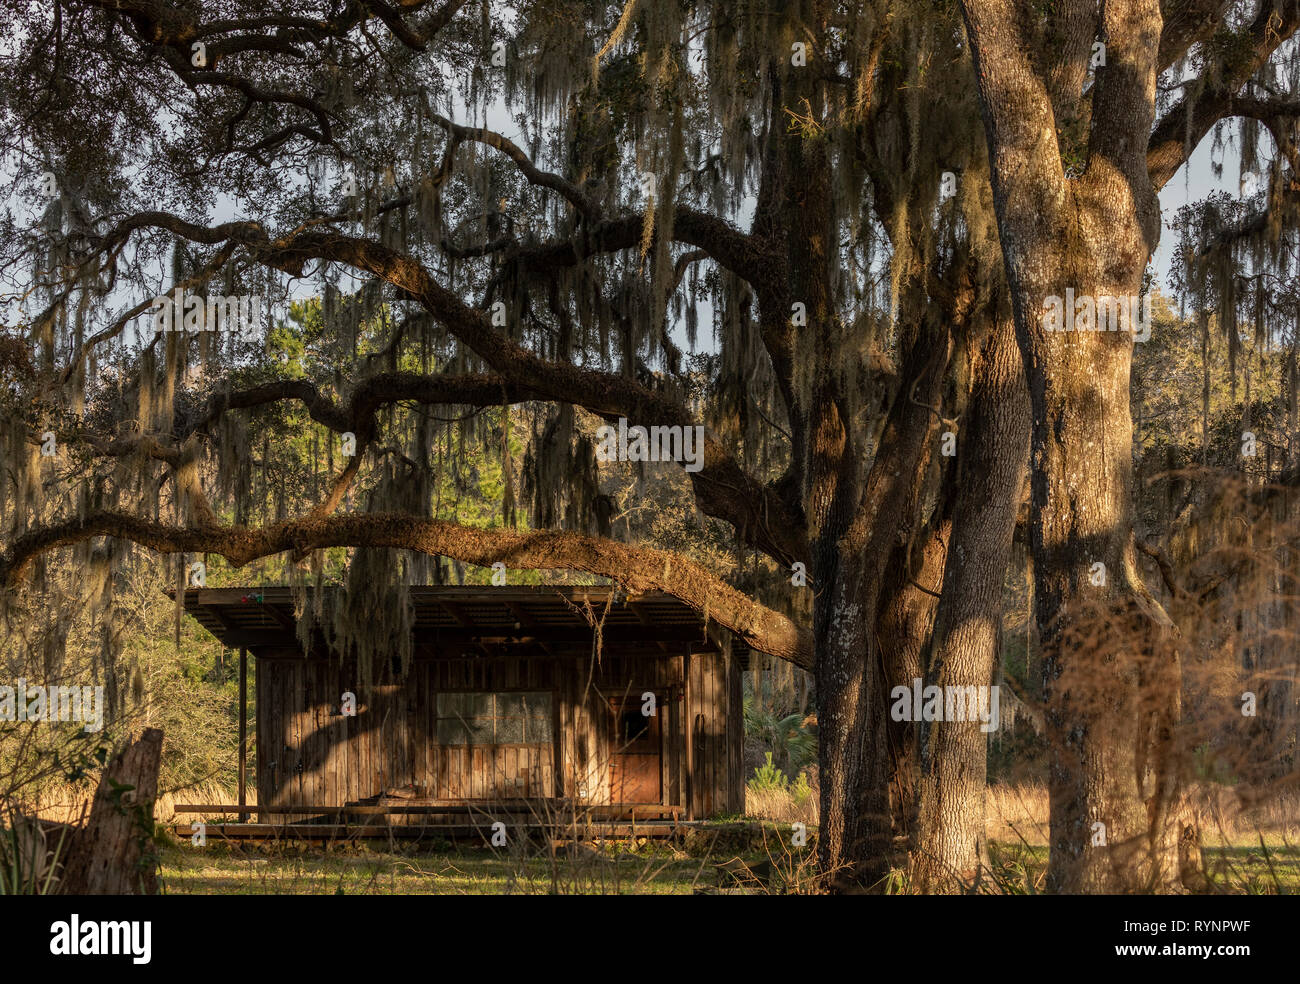 Rural Florida; old cabin in the woods surrounded by Spanish Moss. Crystal River Preserve State Park, Florida Stock Photo